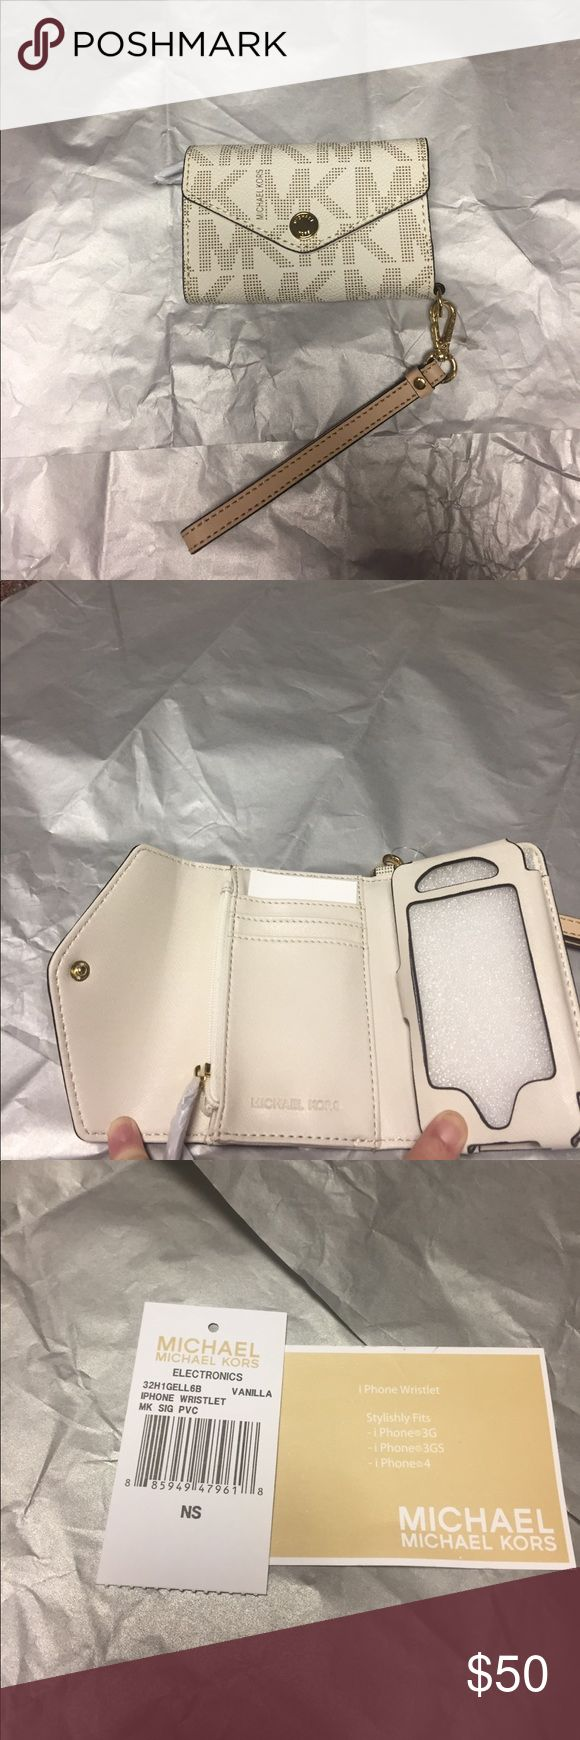 NEVER WORN- Michael Kors IPhone/wristlet iPhone 3G 3GS 4 wallet wristlet , cream base color, tan MK , gold snap button infront and tan strap. NEVER WORN GIVEN AS A GIFT SO PRICE WAS TAKEN OFF: MICHAEL Michael Kors Bags Clutches & Wristlets